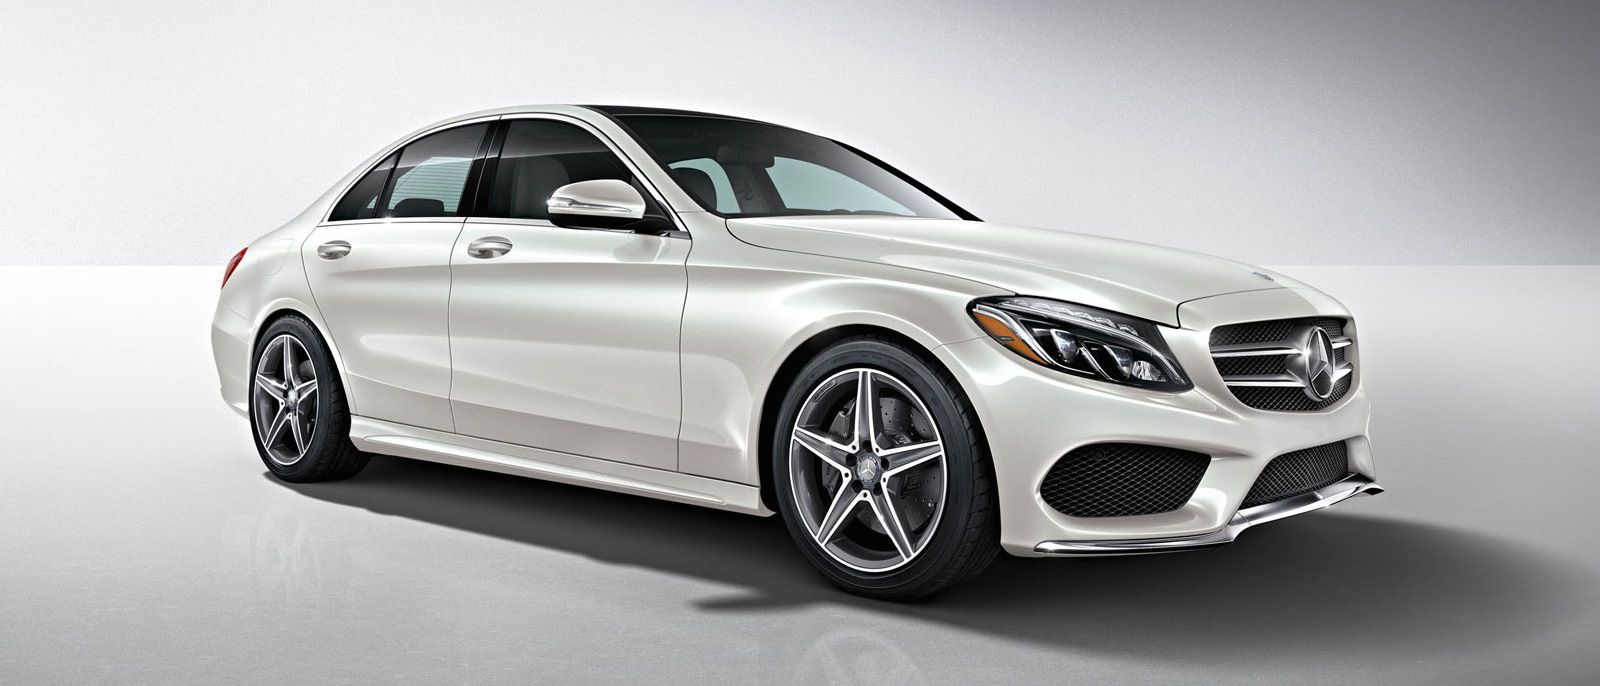 image result for mercedes benz c class - 2015 Mercedes Benz C Class White